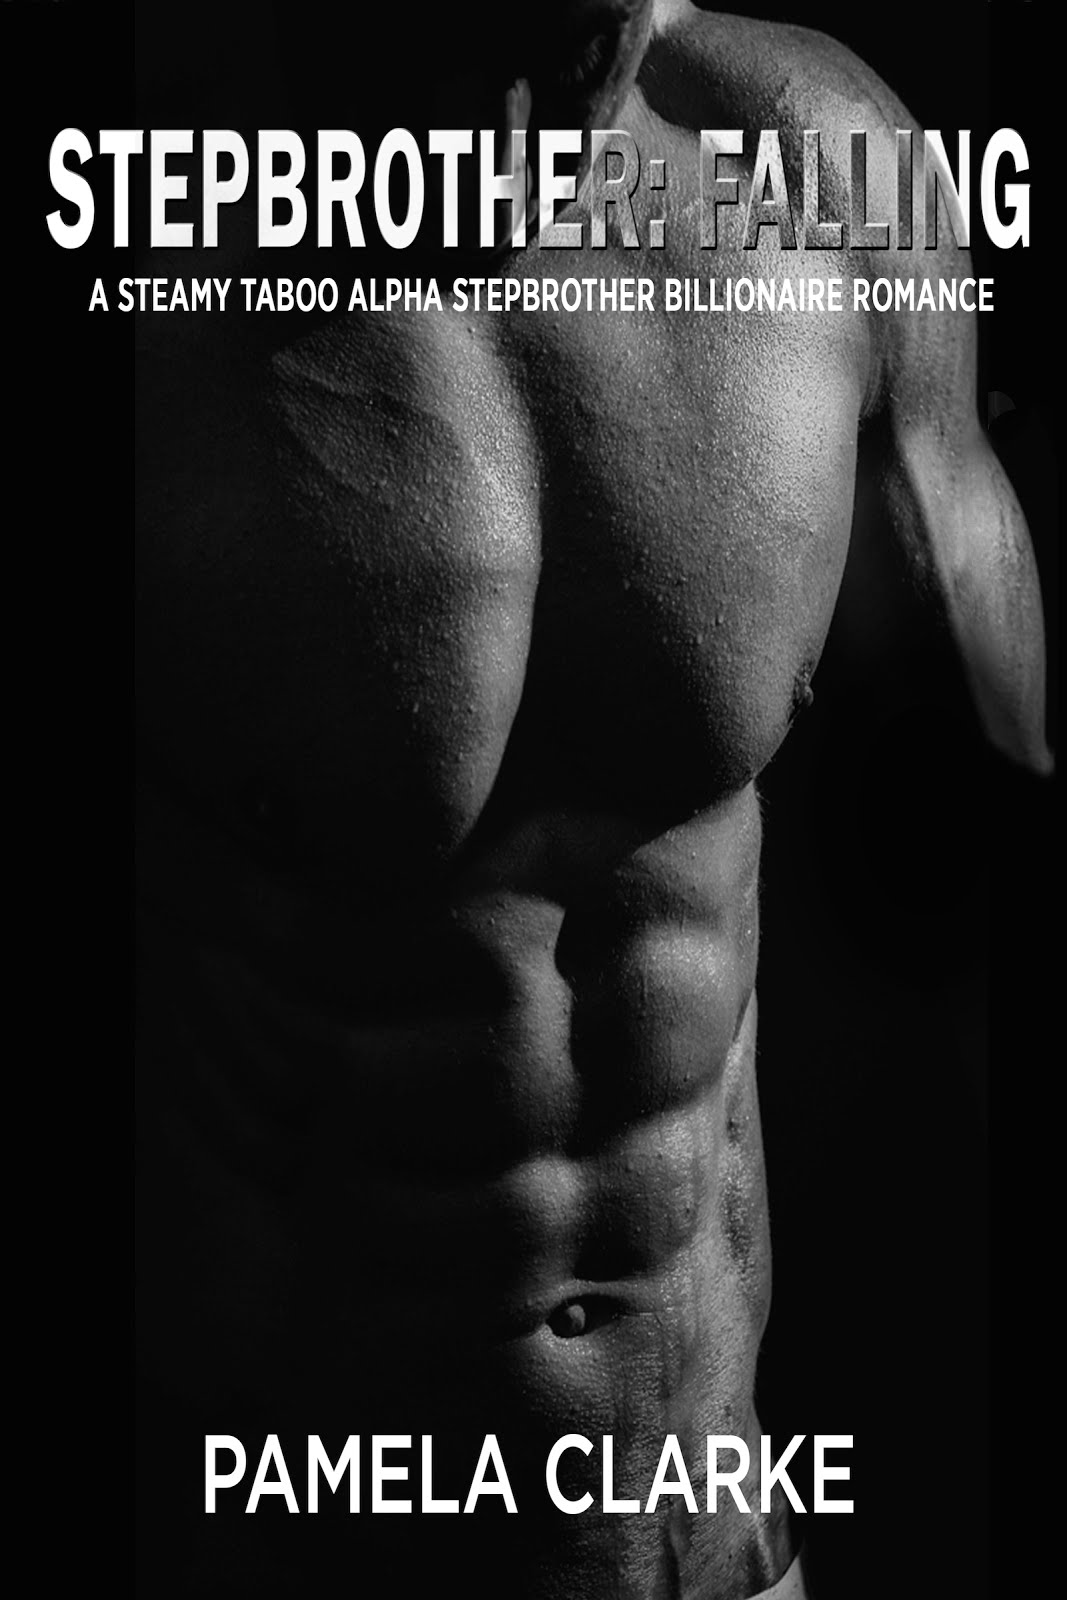 Another steamy alpha billionaire stepbrother romance!